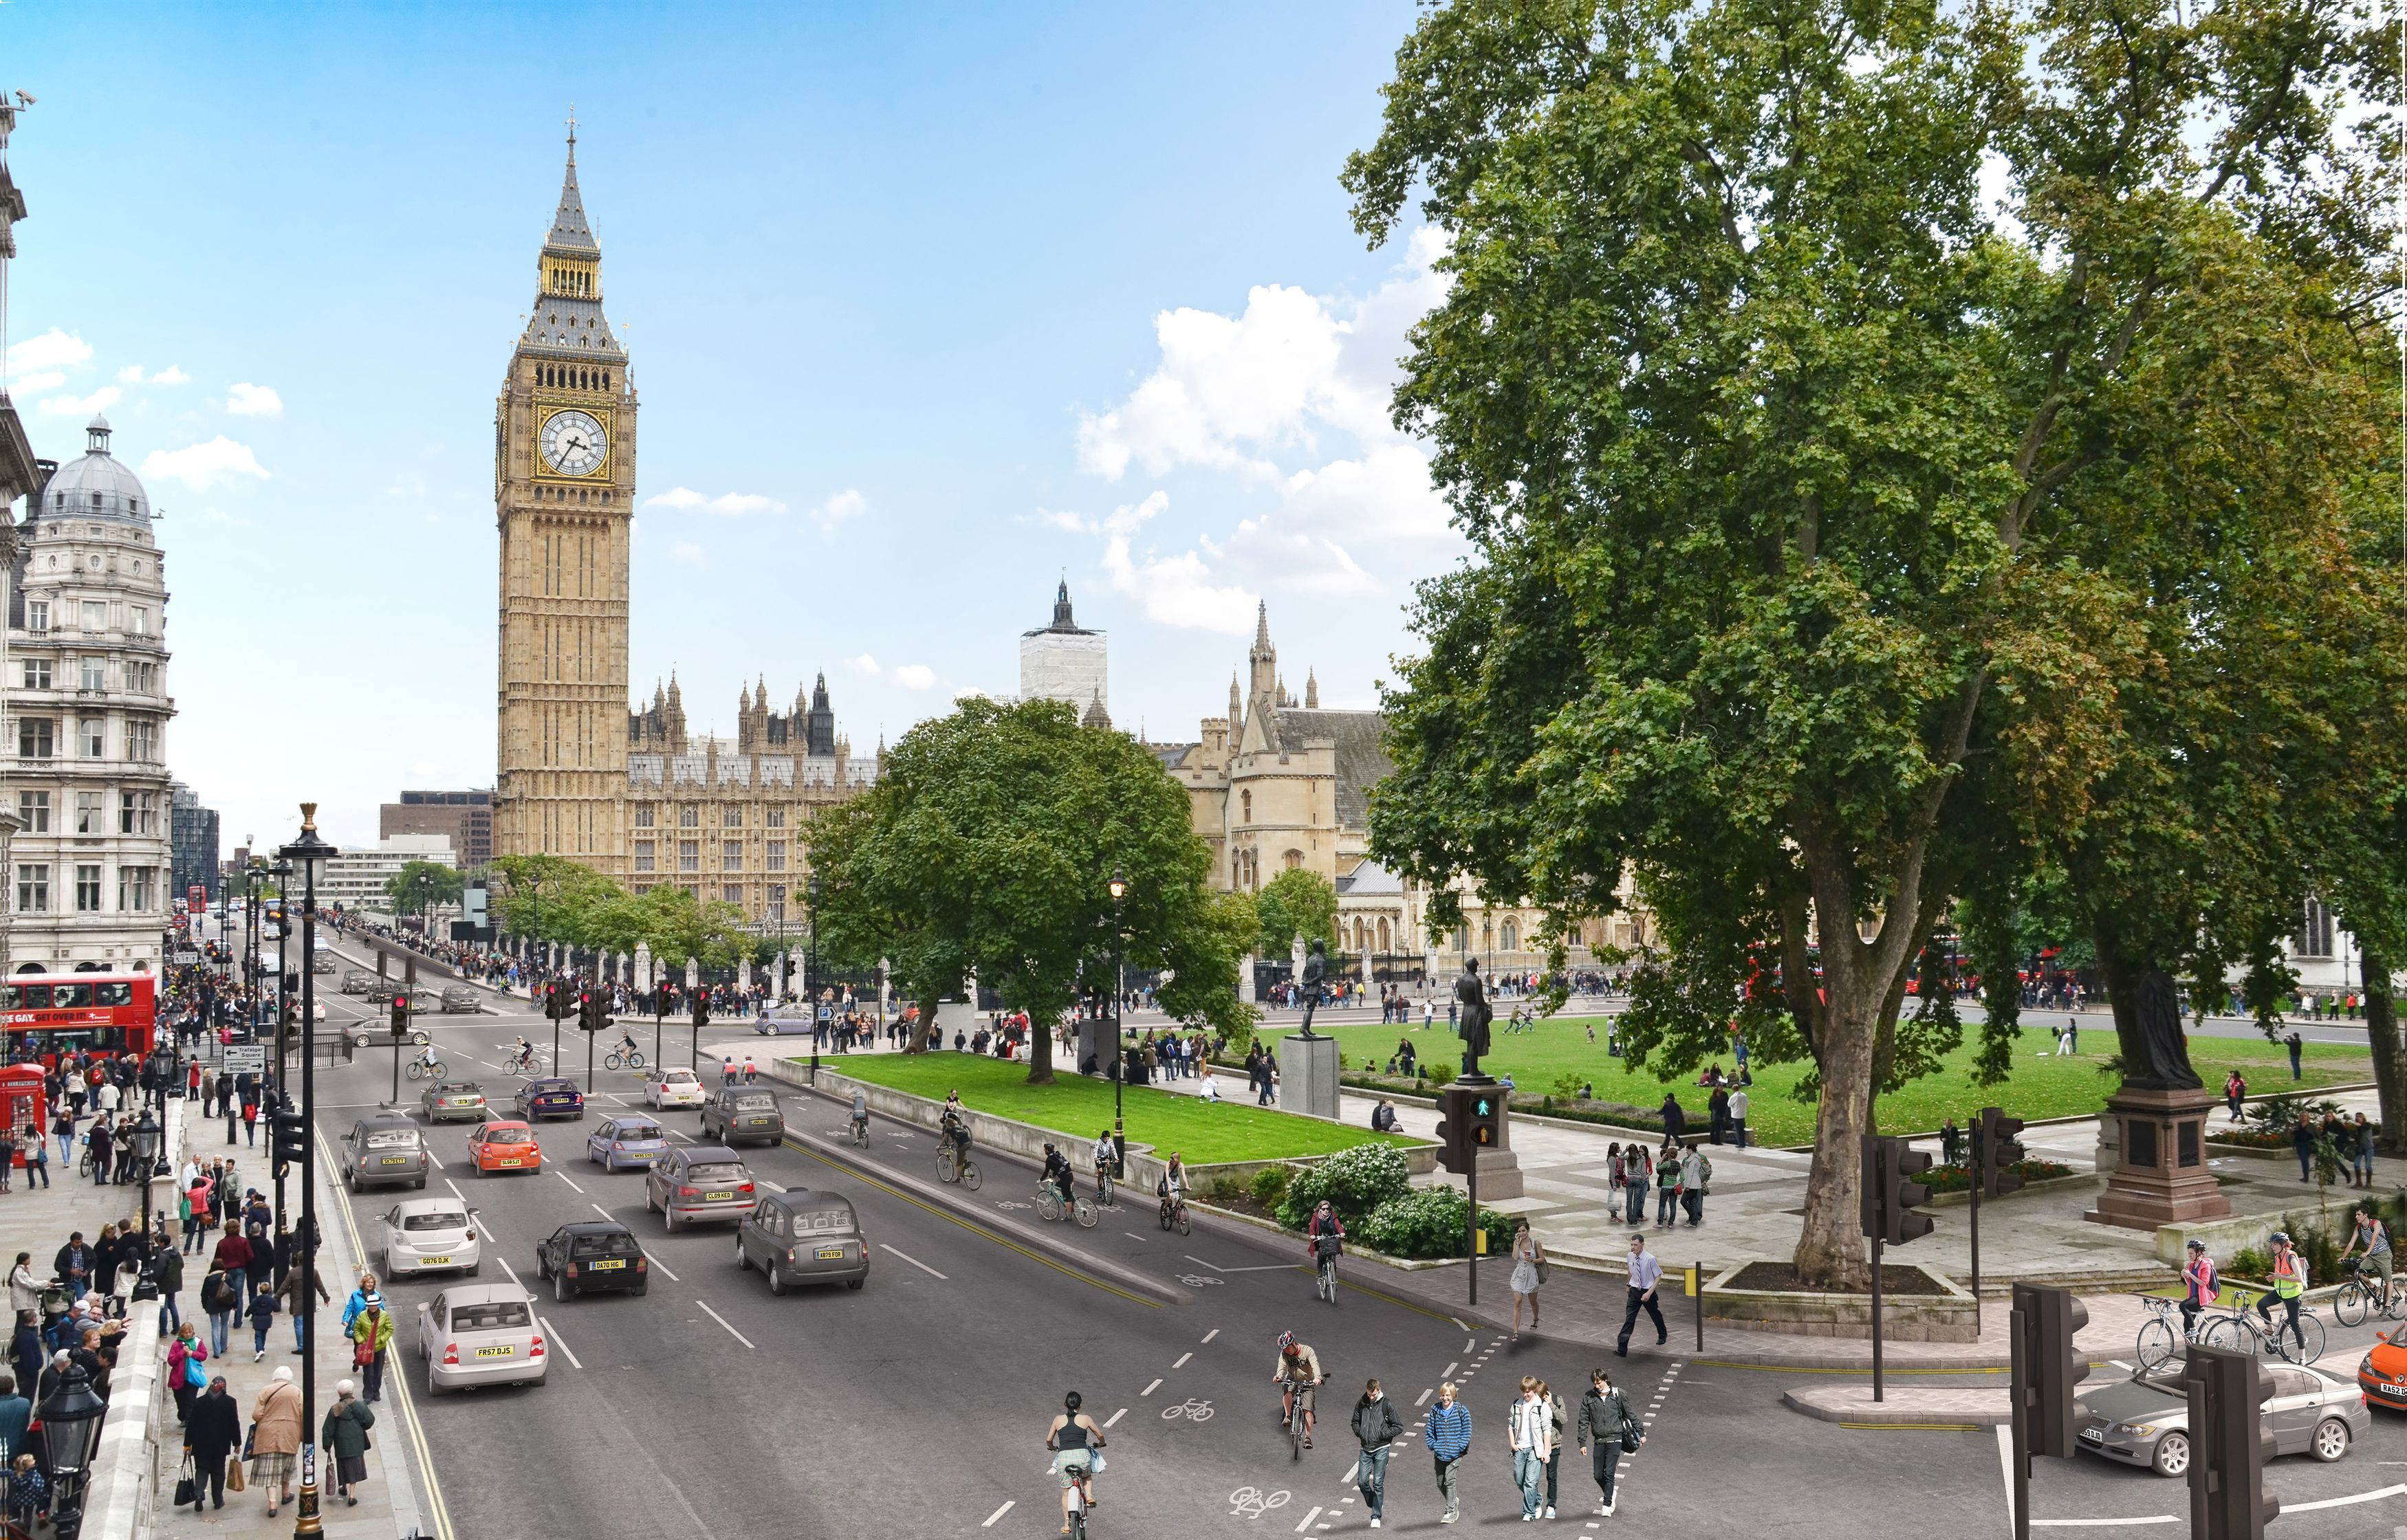 artist's impression showing how Parliament Square in London would look after an urban cycleway was installed.